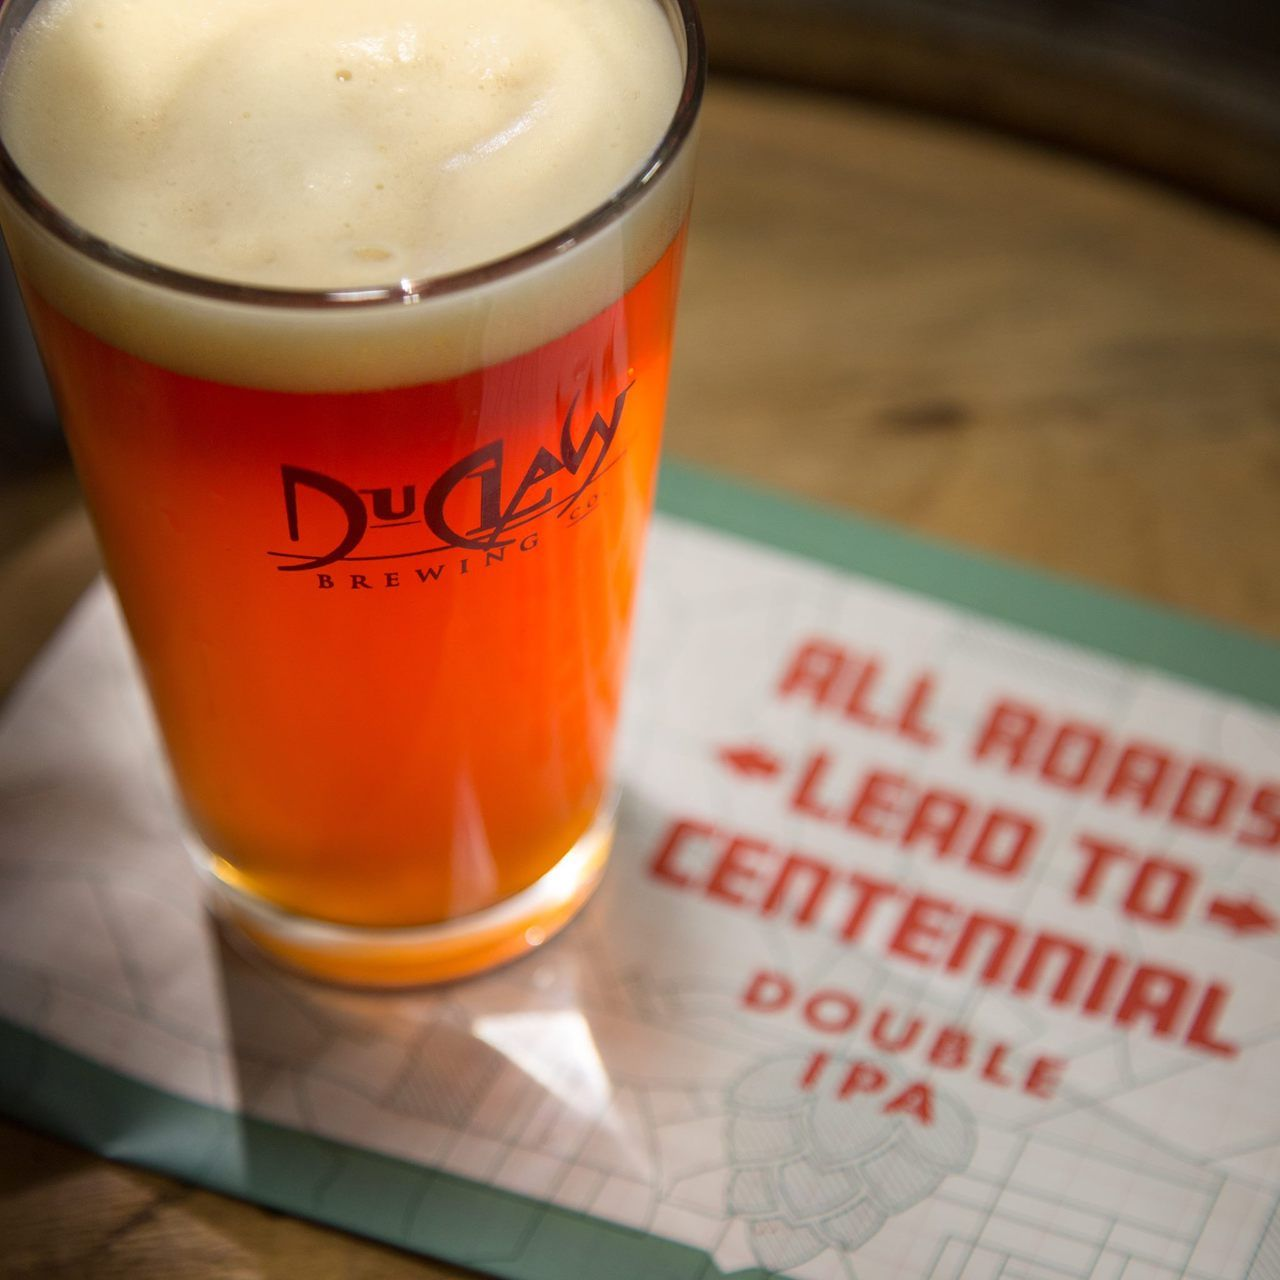 DuClaw Brewing Company in Baltimore